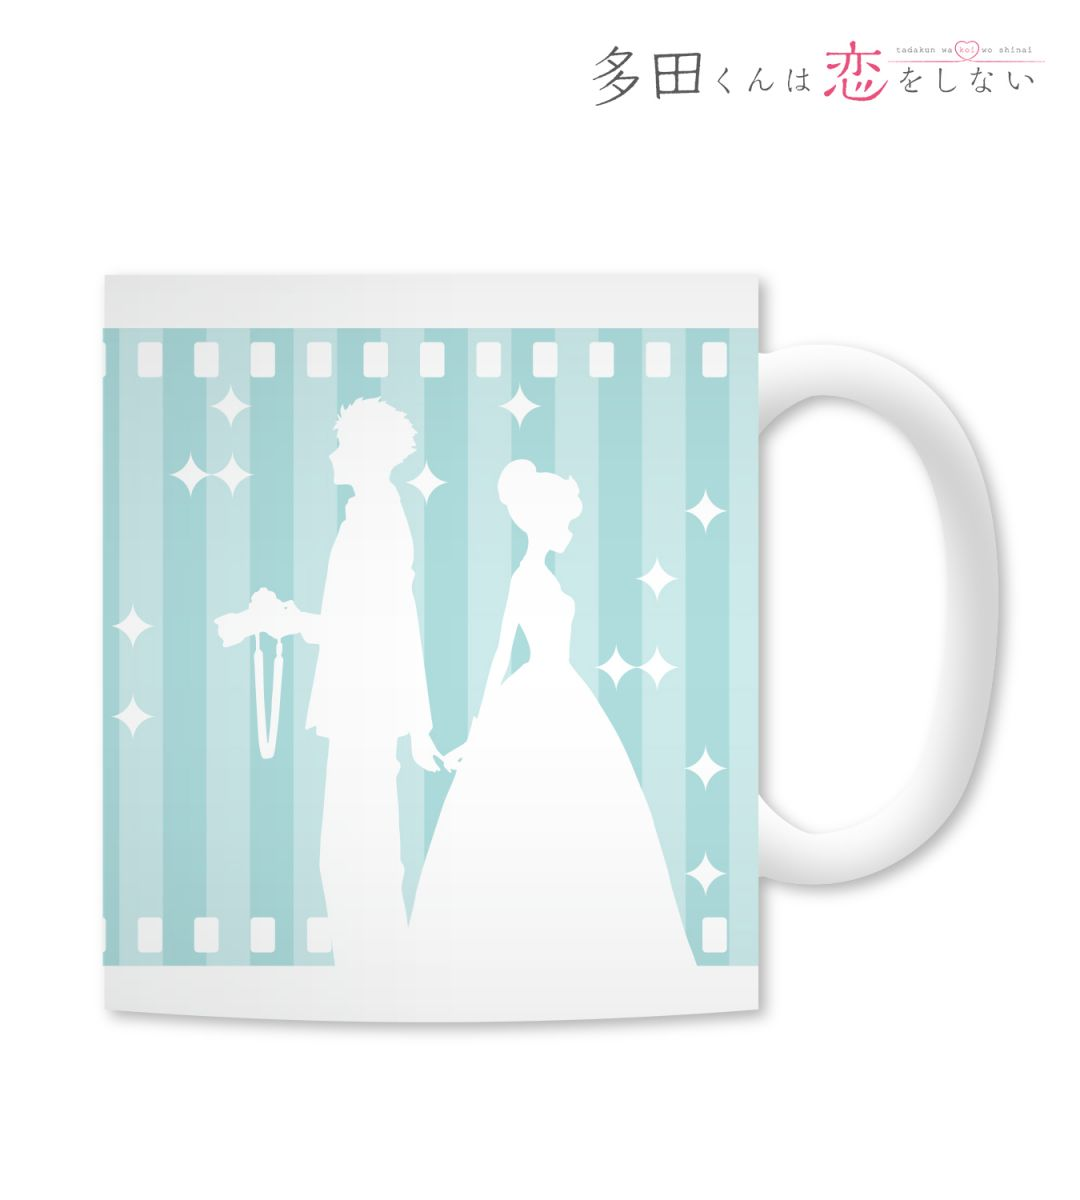 Cup | Anime Tada-kun Never Falls in Love | Anime Merchandise Monday (20-26 August 2018) | MANGA.TOKYO ©TADAKOI PARTNERS